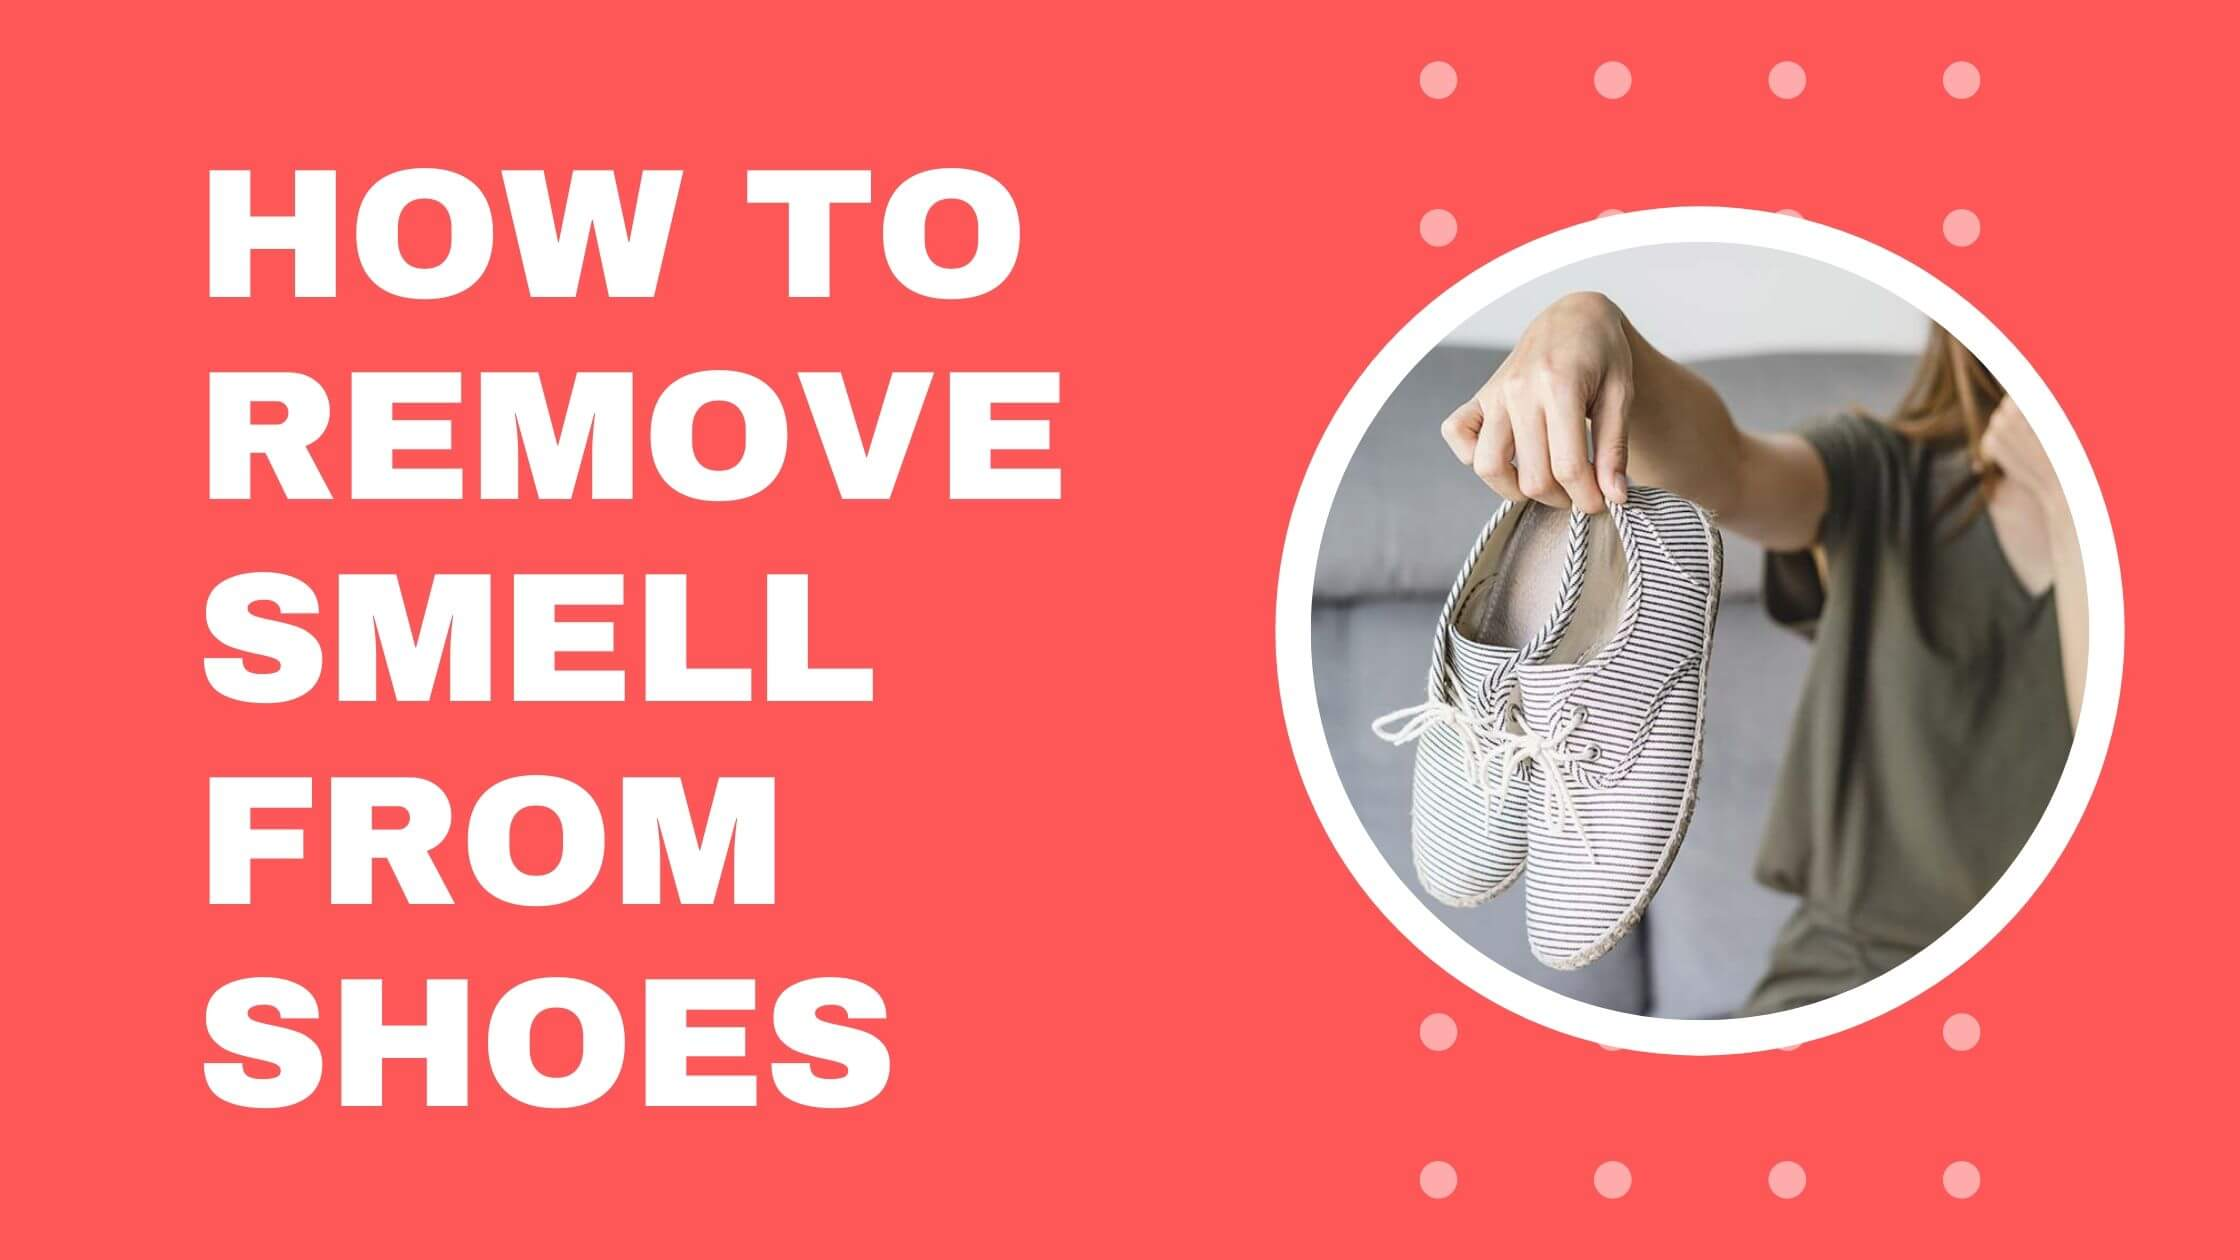 How To Remove Smell From Shoes?